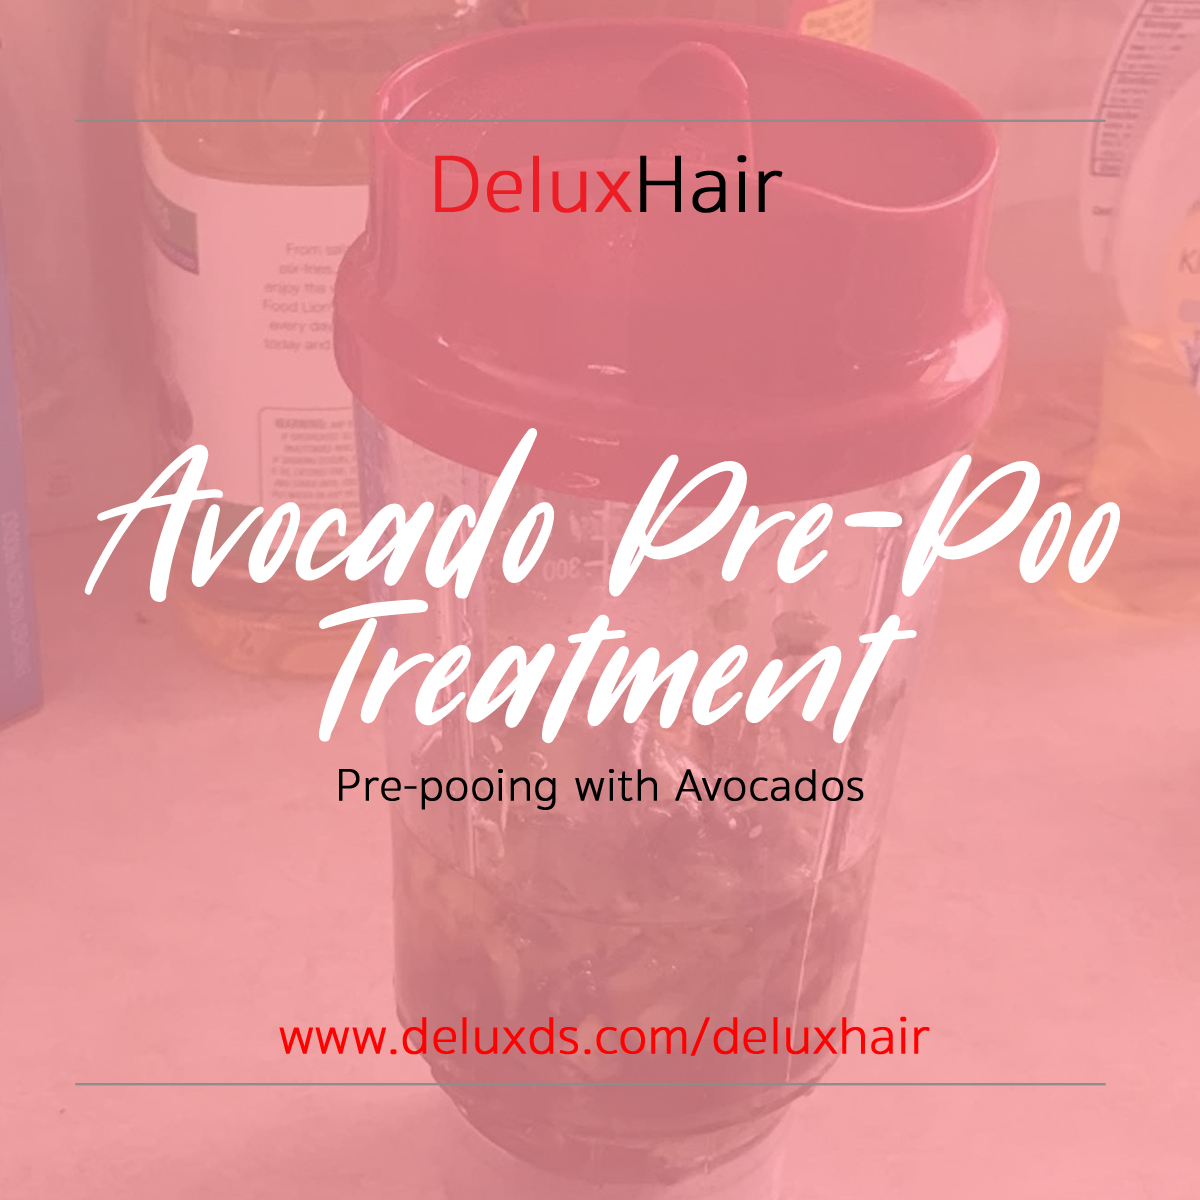 DeluxHair - Avocado Pre-Poo Treatment